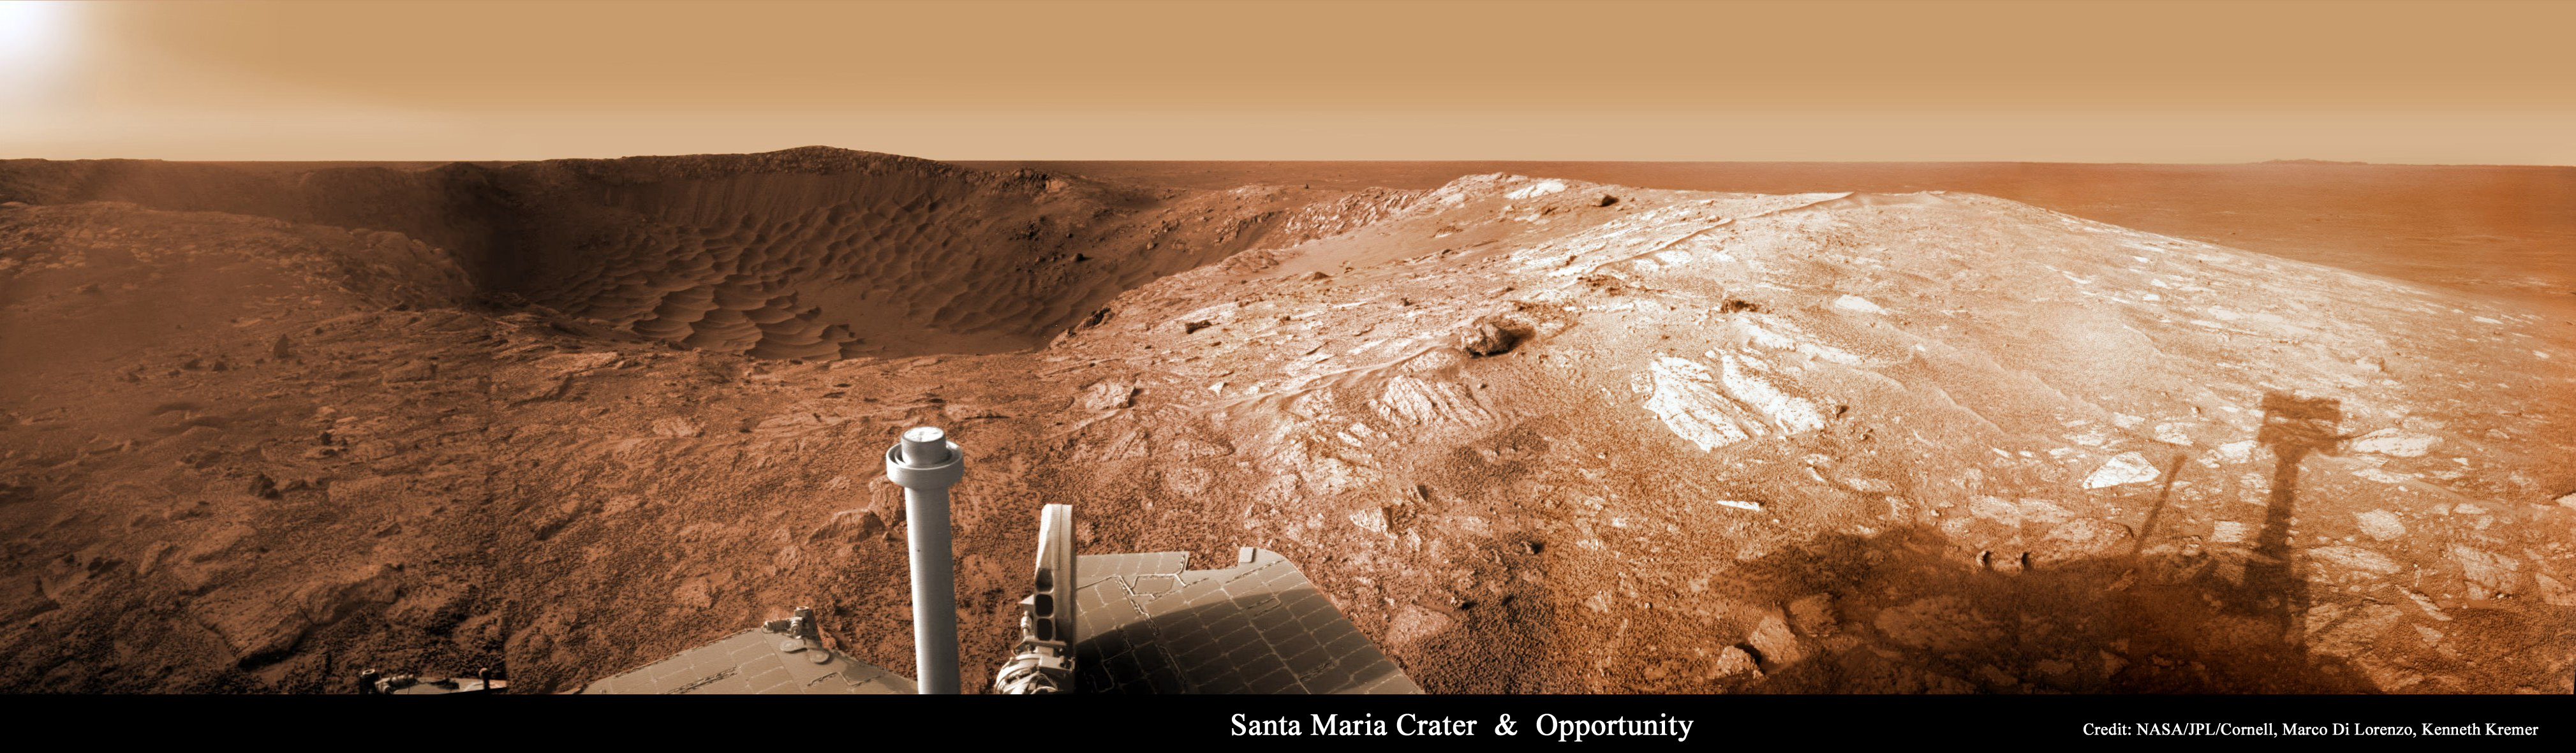 NASA says there is NO life on Mars Curiosity rover hasnt